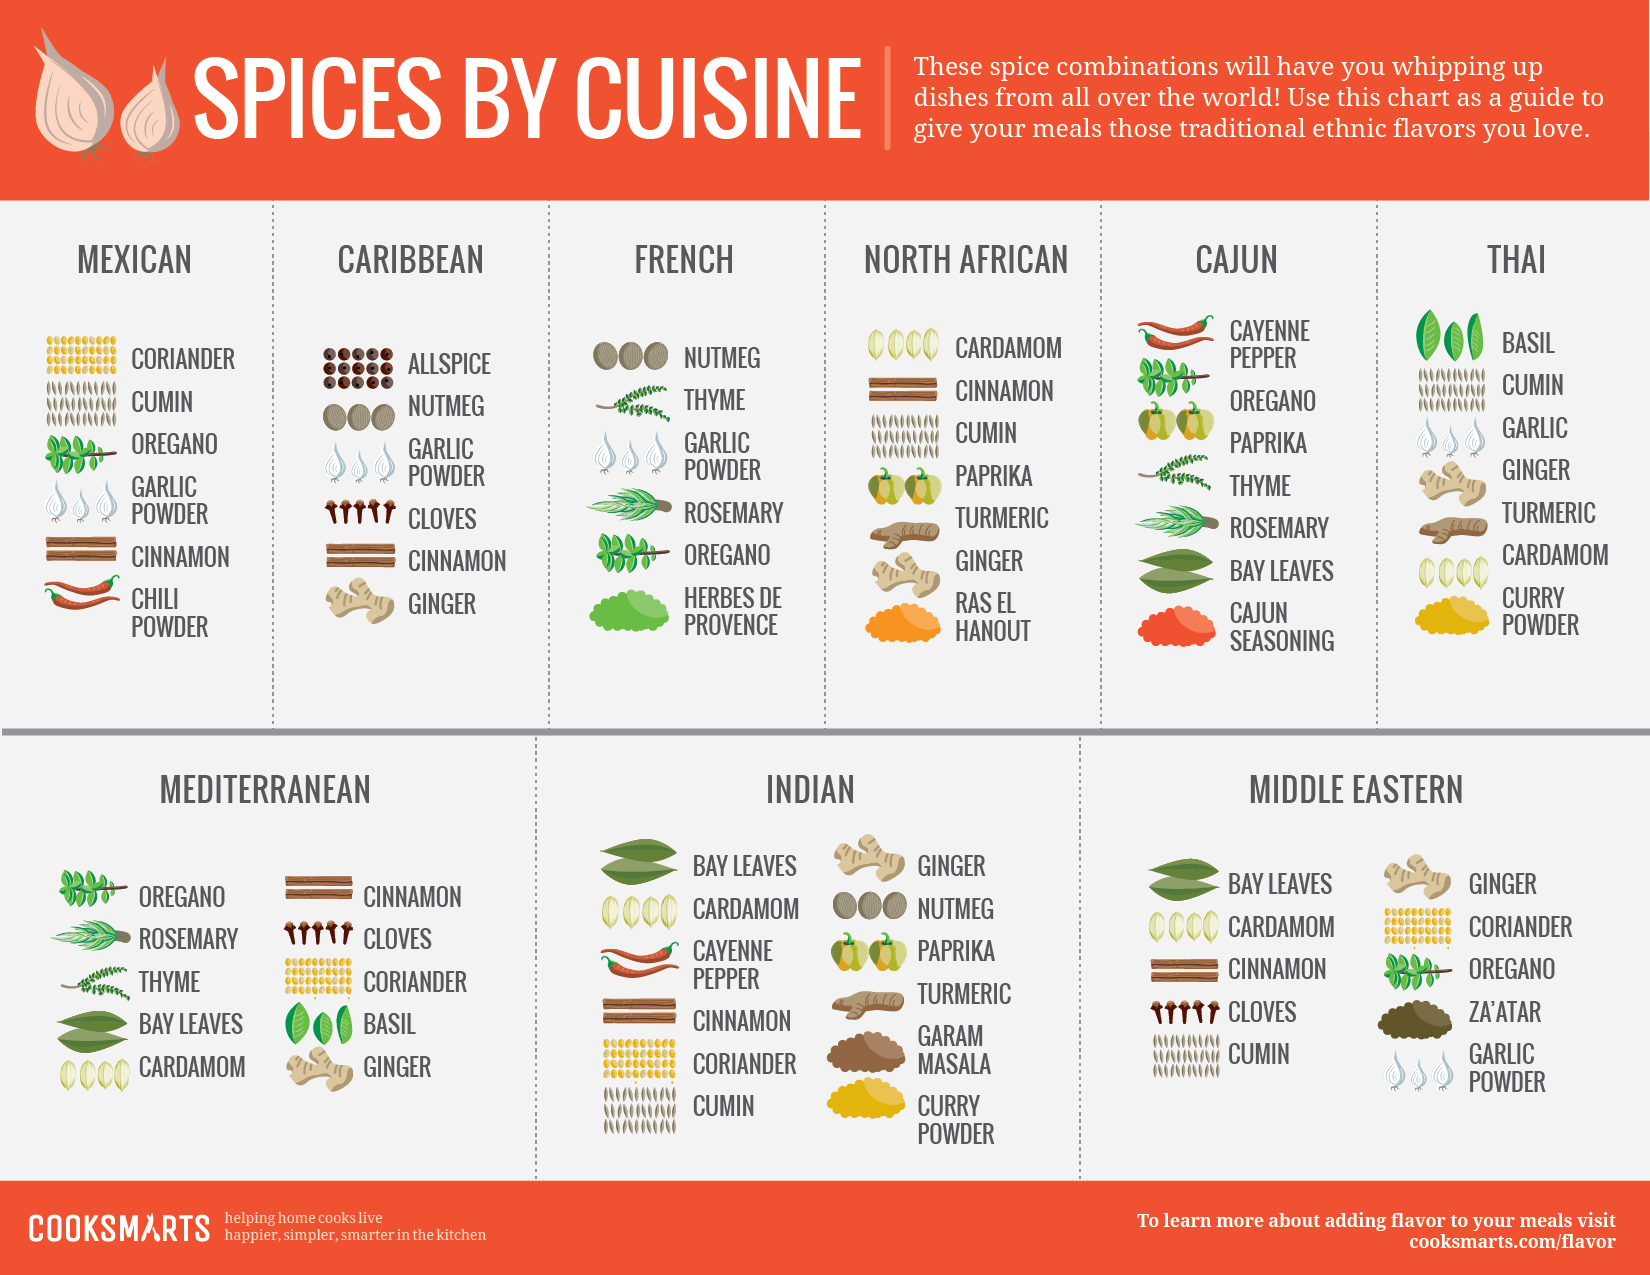 Ethnic Cuisine Book Our Infographic Guide To Flavoring With Spices Cook Smarts